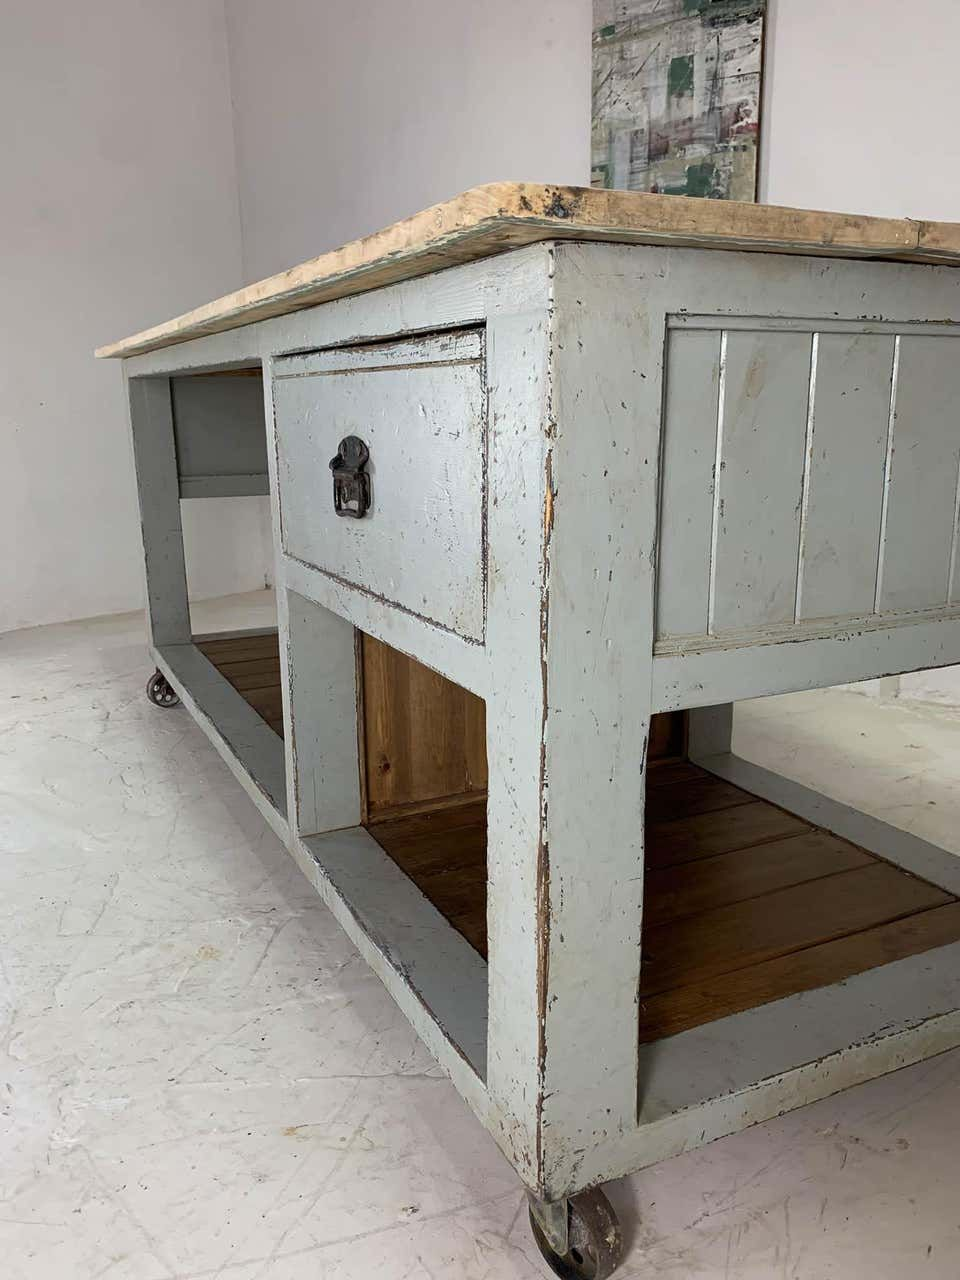 For Sale On 1stdibs Fabulous Kitchen Island Based On Original Designs By Renowned Baker S Tables M Antique Kitchen Island Bakers Table Painted Kitchen Island